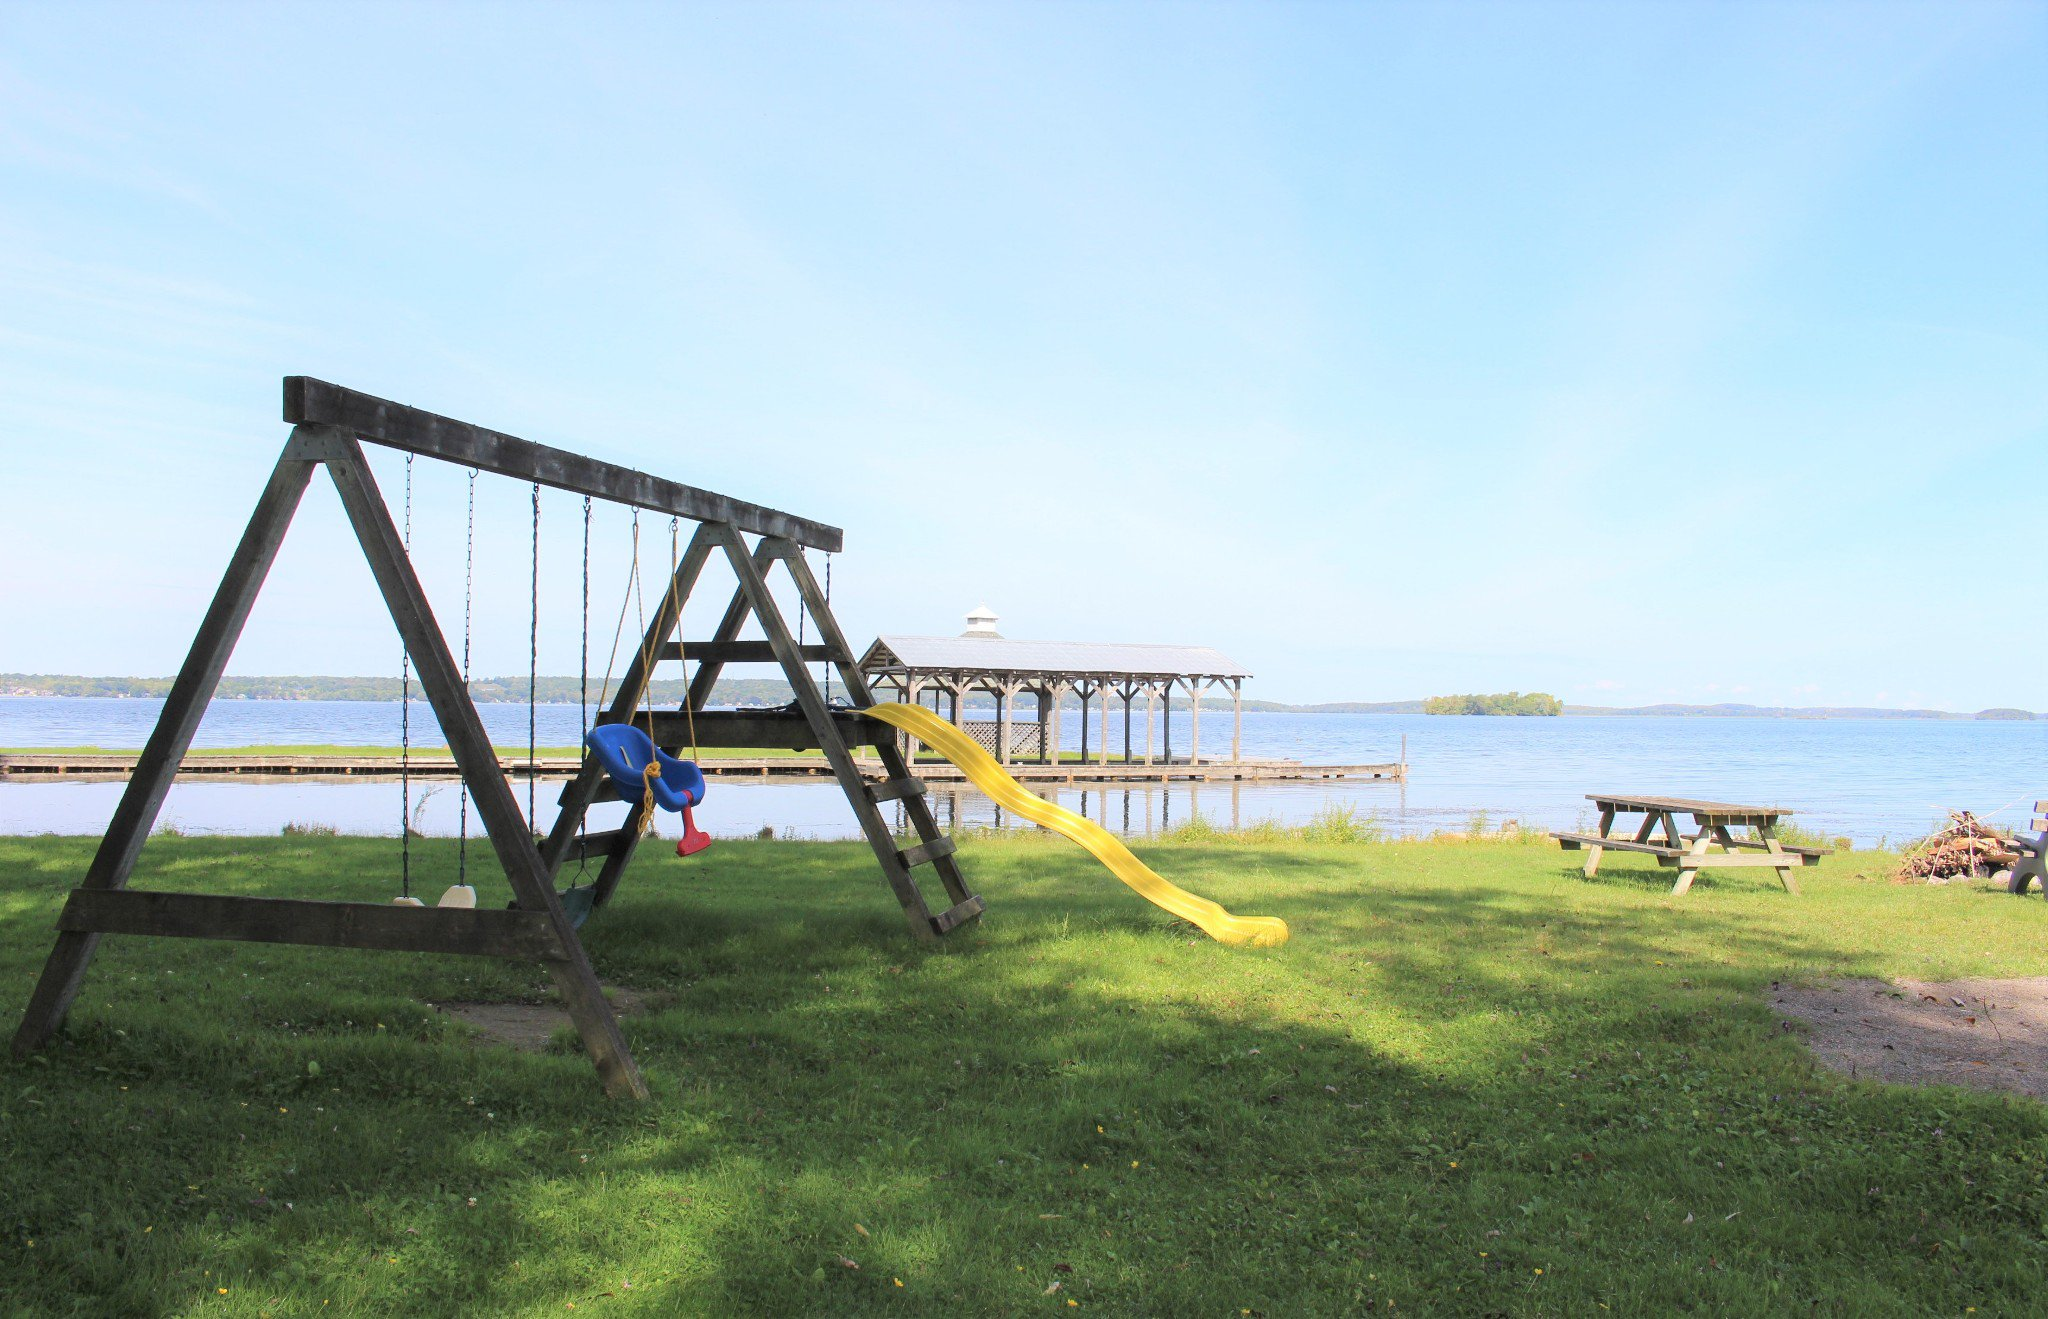 Photo 23: Photos: 6010 Rice Lake Scenic Drive in Harwood: Other for sale : MLS®# 223405